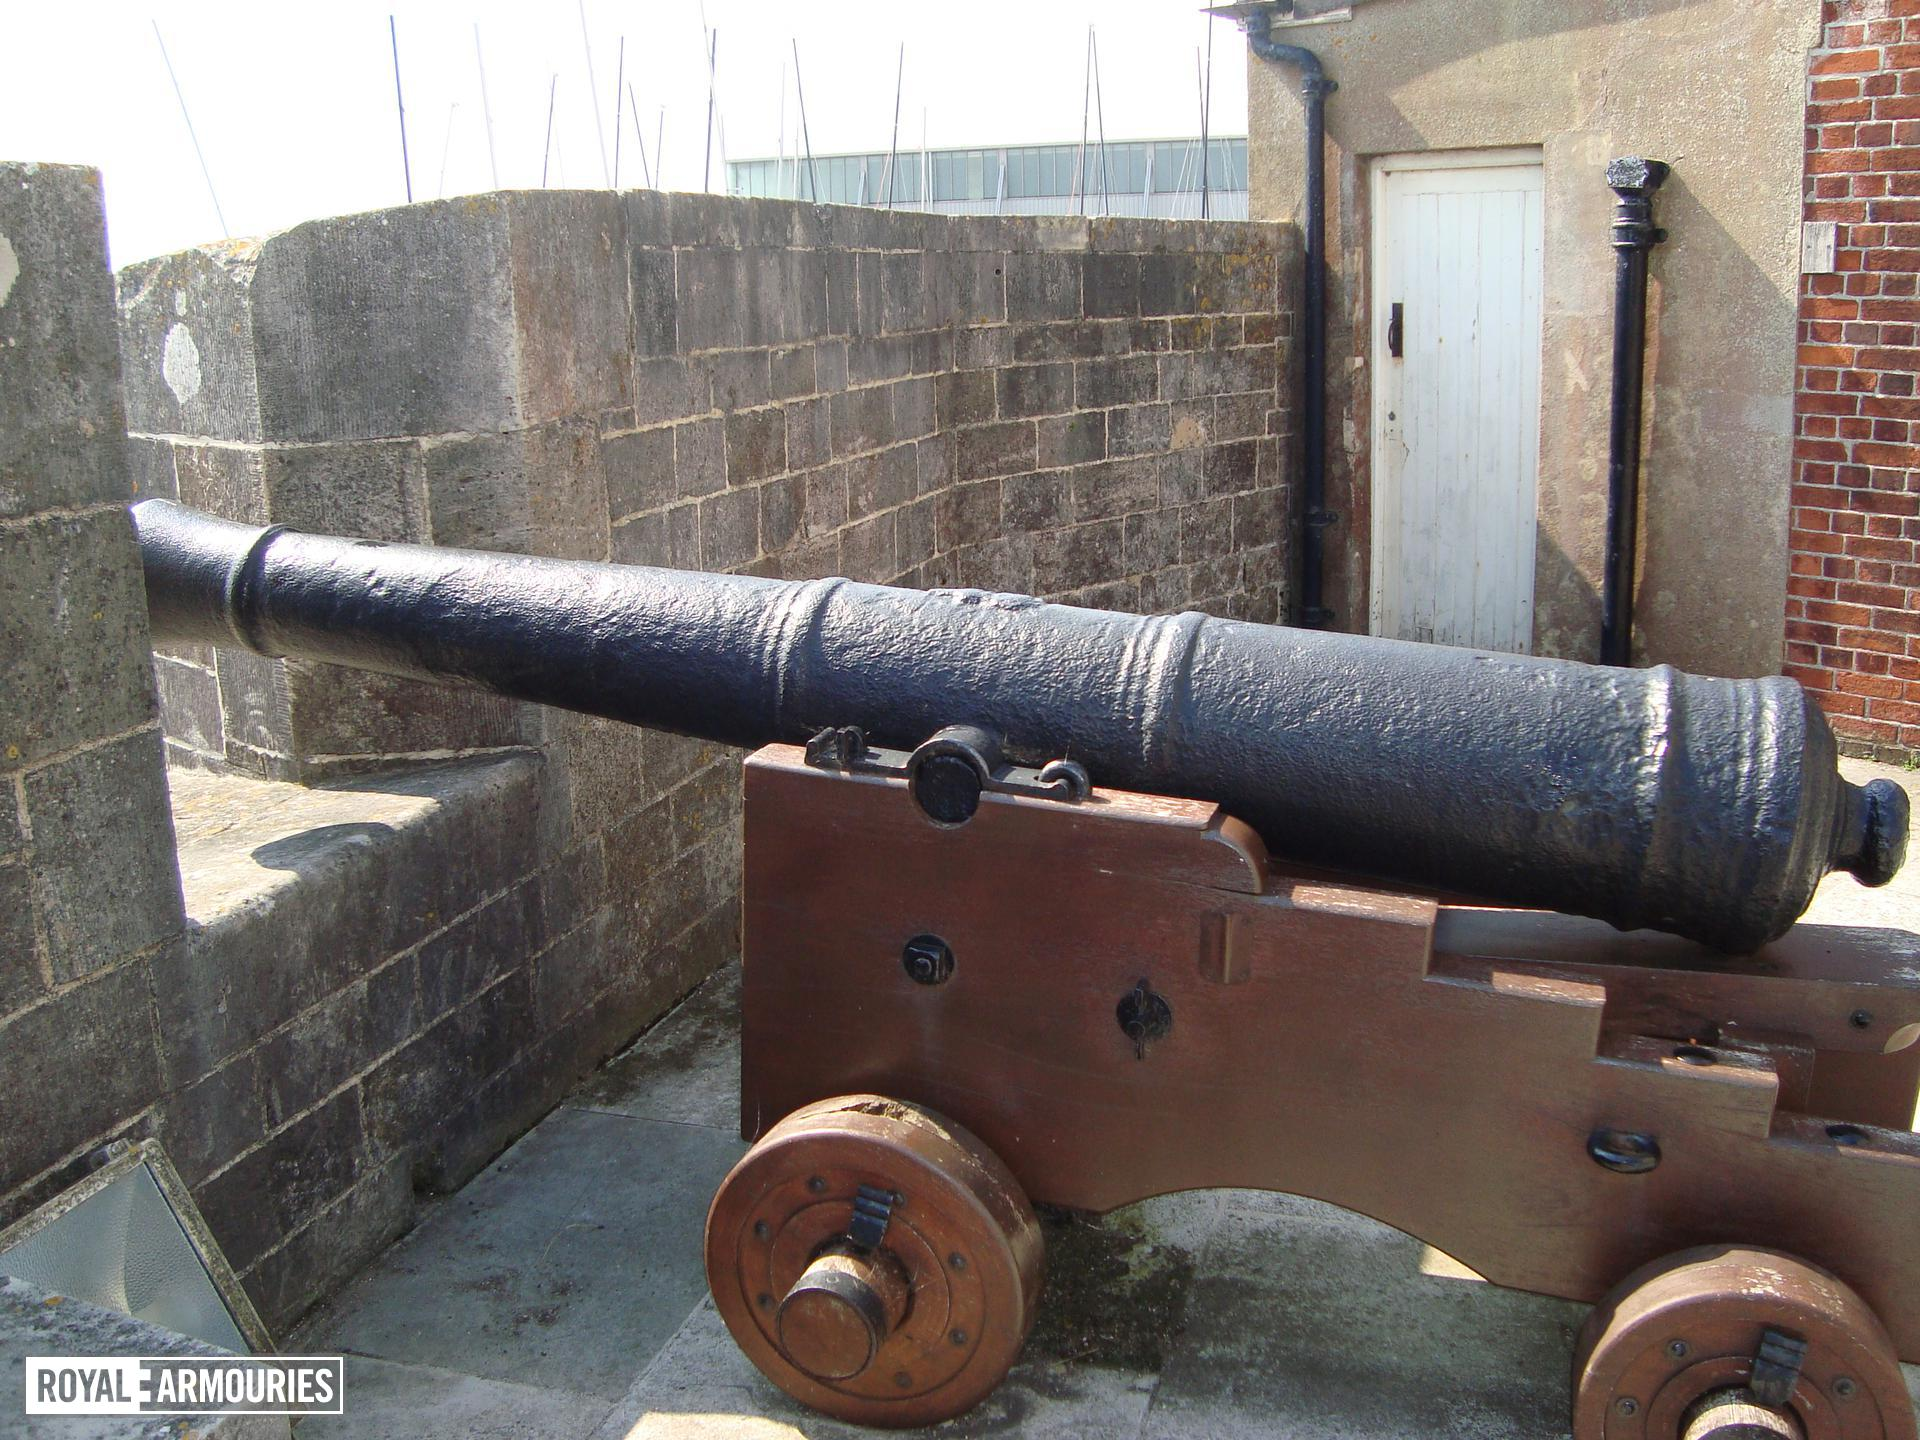 The gun on display at Calshot Castle.